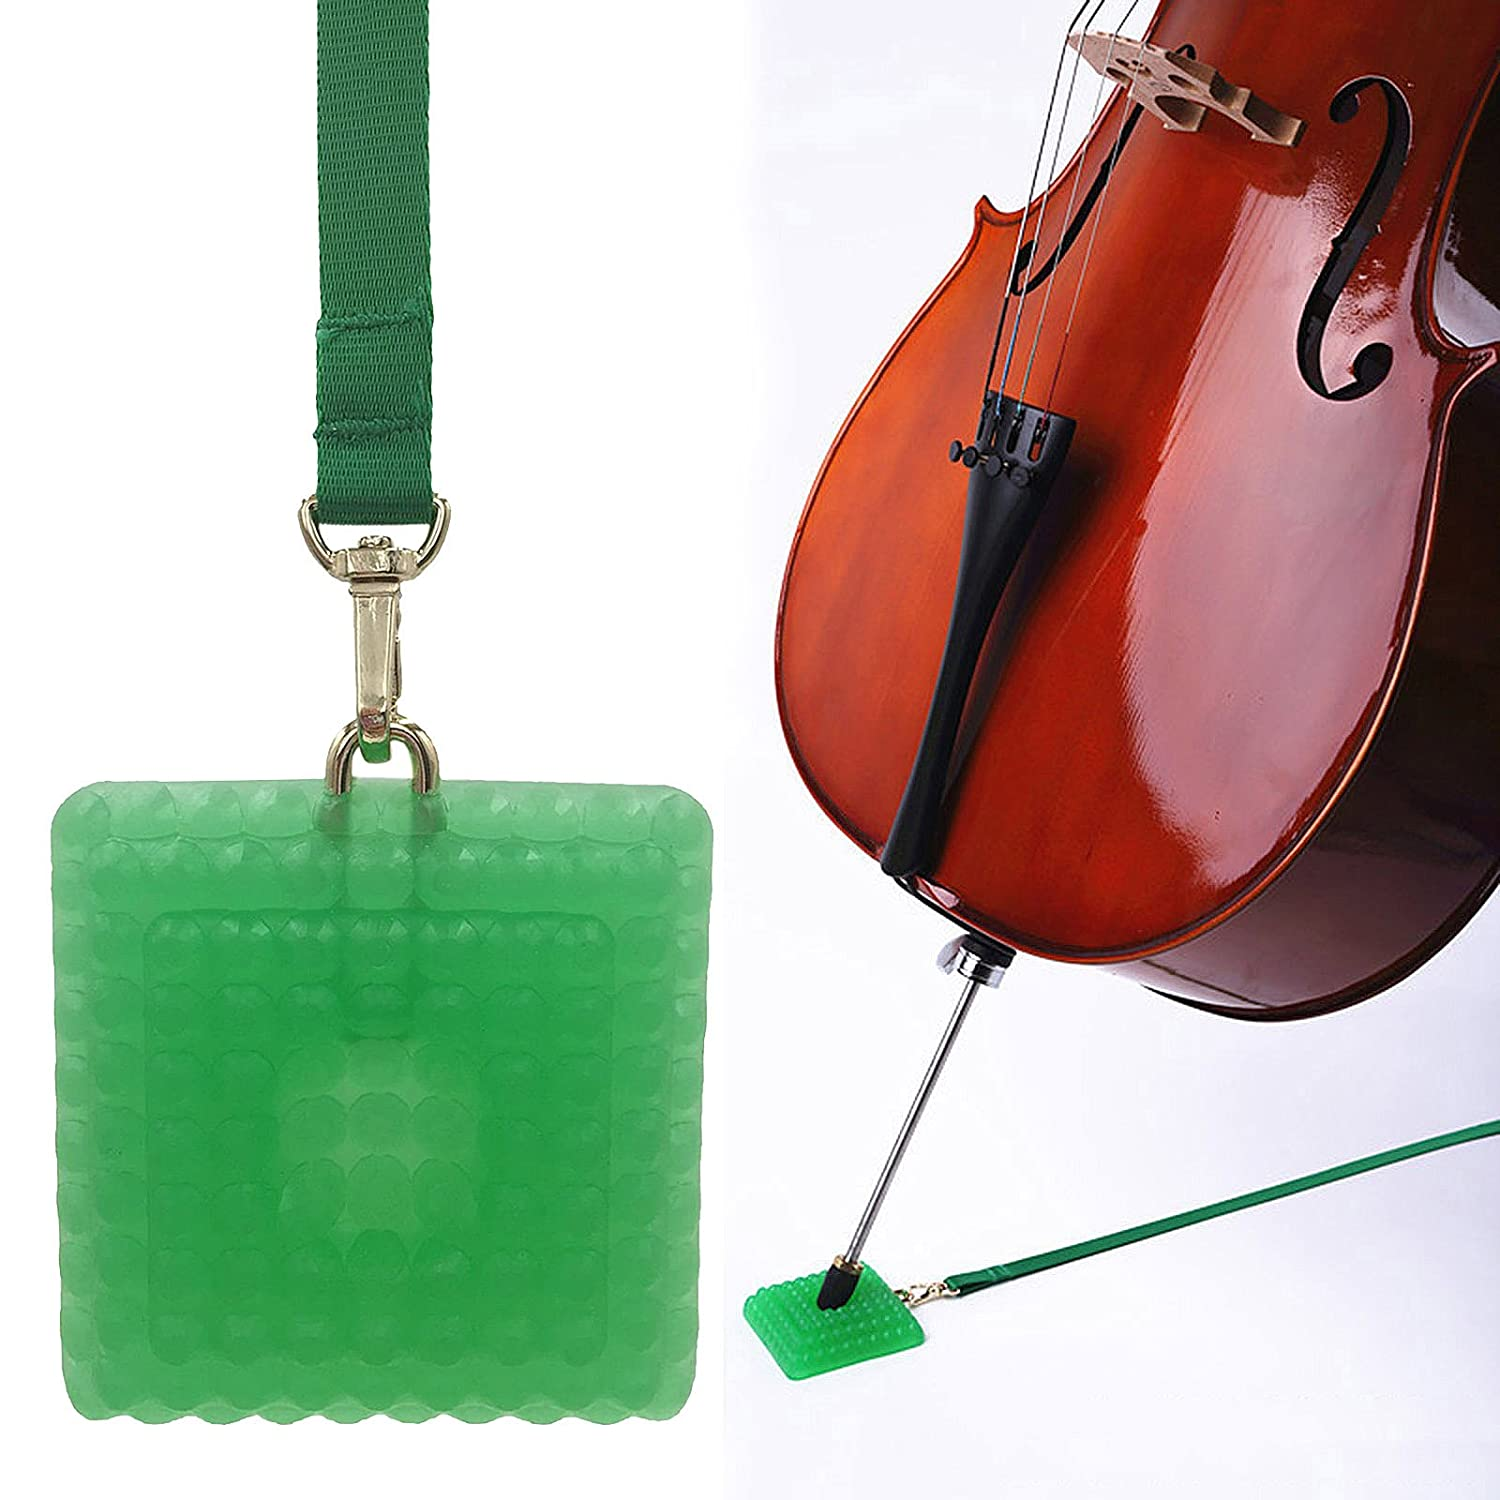 L'MS Silica Gel Cello Anti-slip Endpin Anchor Spike End Pin Rest Holder Floor Protector (Green)